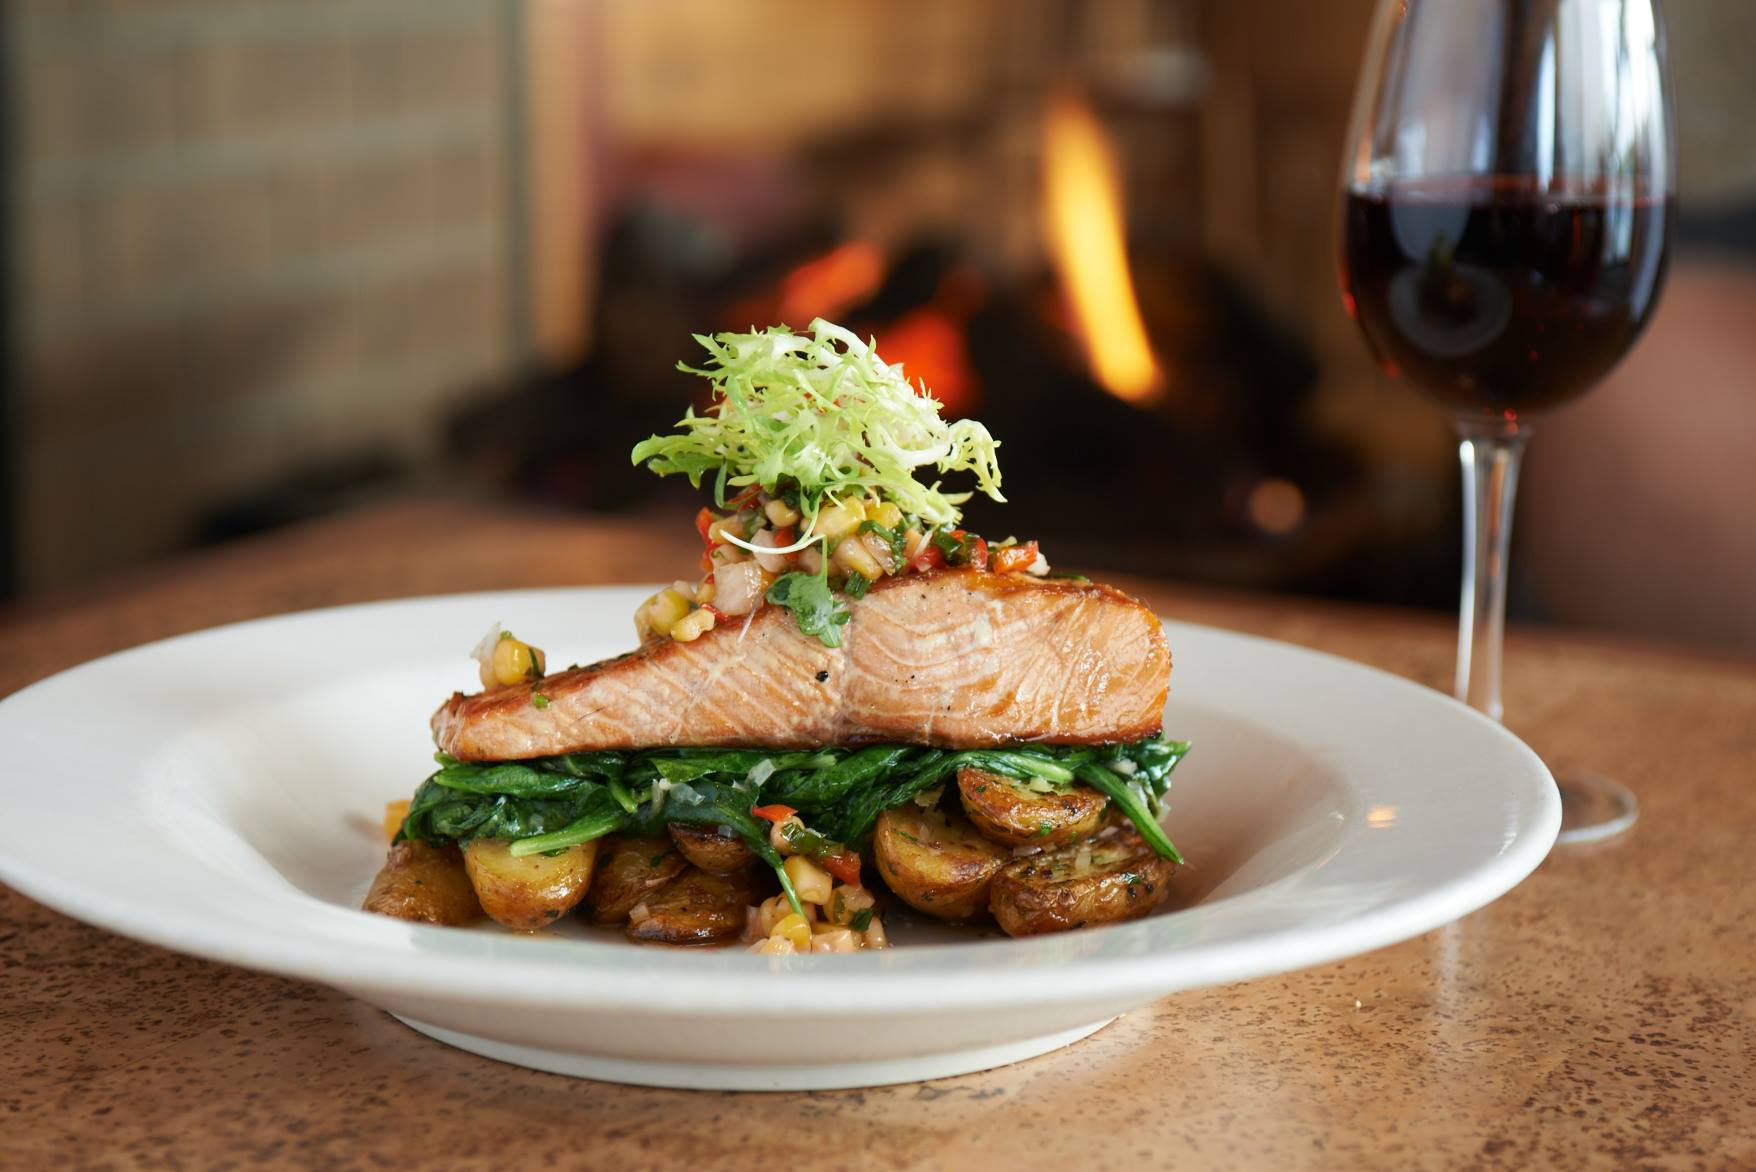 It doesn't get more iconic than salmon at Ivar's.  Grilled on an alderwood plank grill, Ivar's showcases northwest salmon to its full glory. (Image: Ivar's)